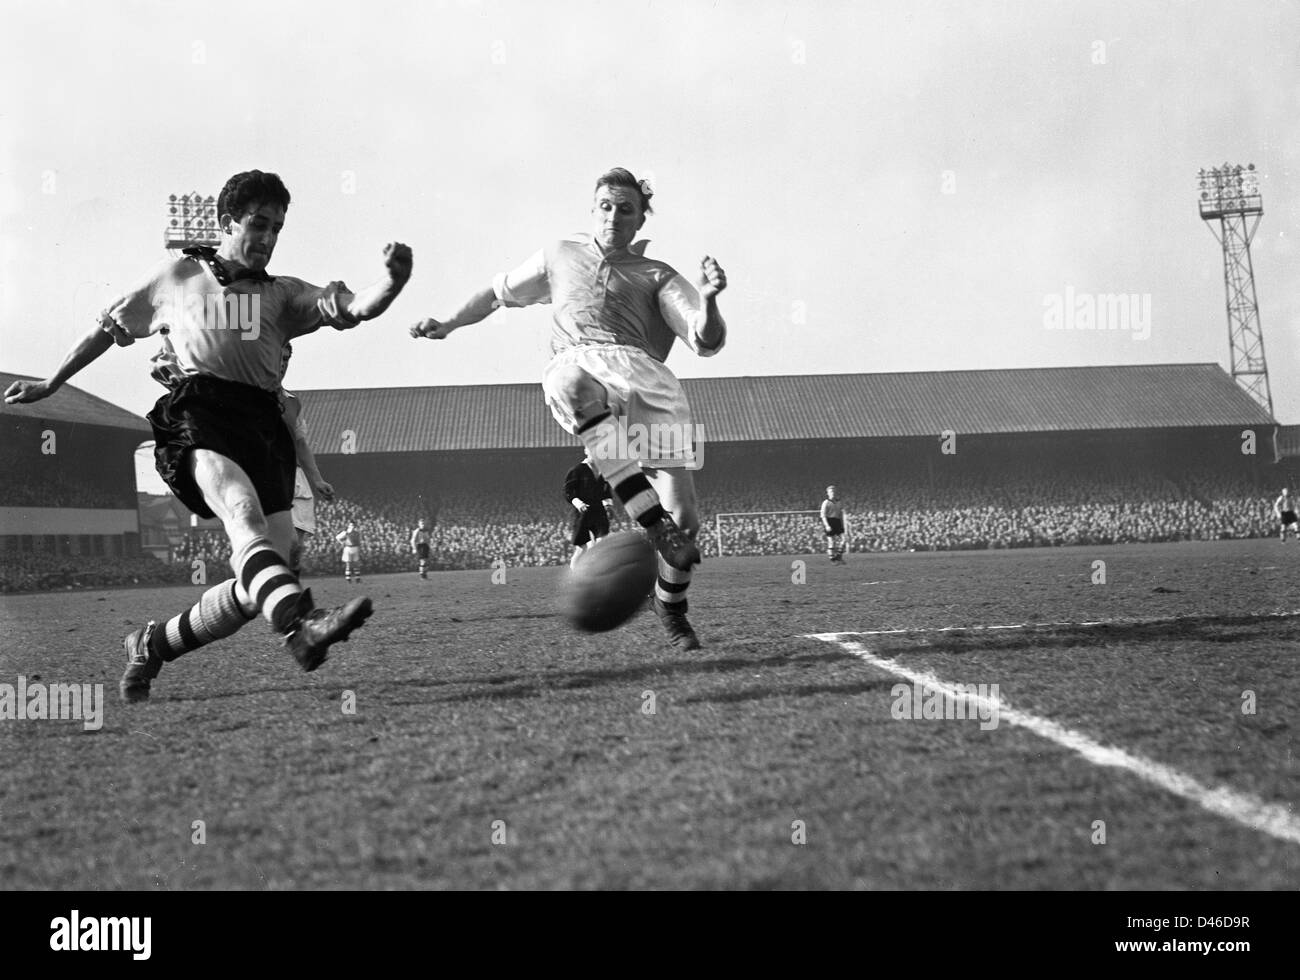 Wolverhampton Wanderers FC in action against Arsenal at Molineux in the 1950s Colin Booth of Wolves and Peter Goring - Stock Image